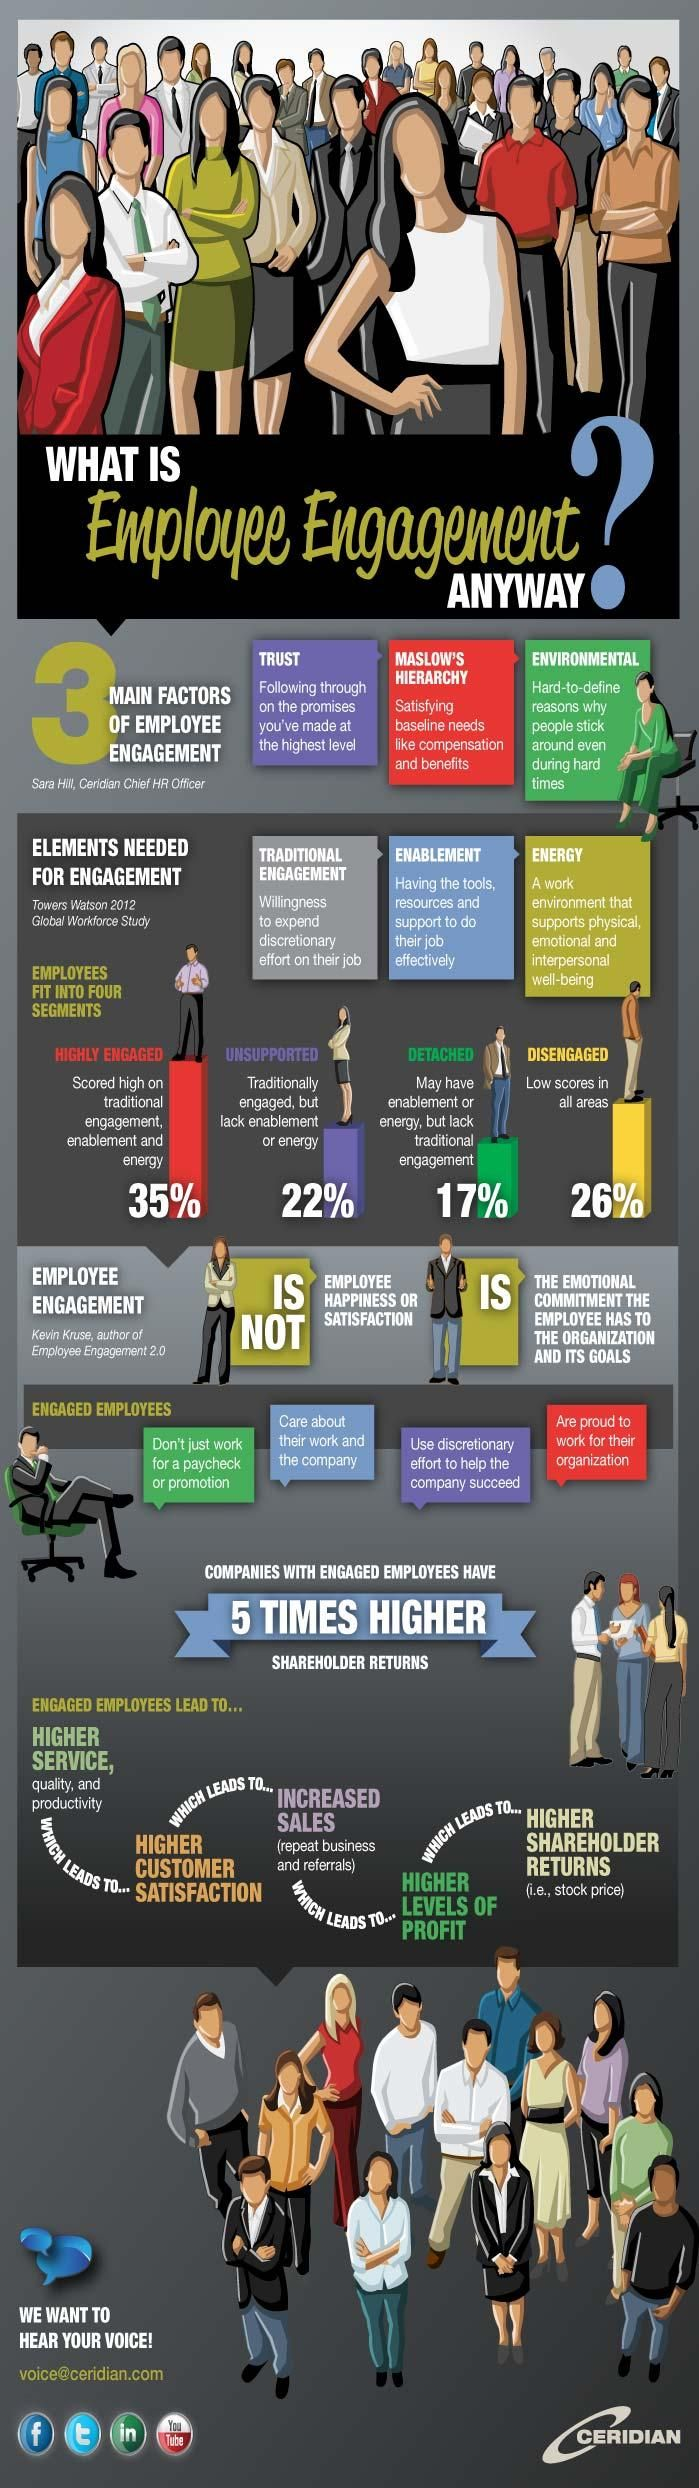 Paying someone more rarely motivates them to work harder. Focus on Engagement -   Employee Engagement ...what it is and isn't